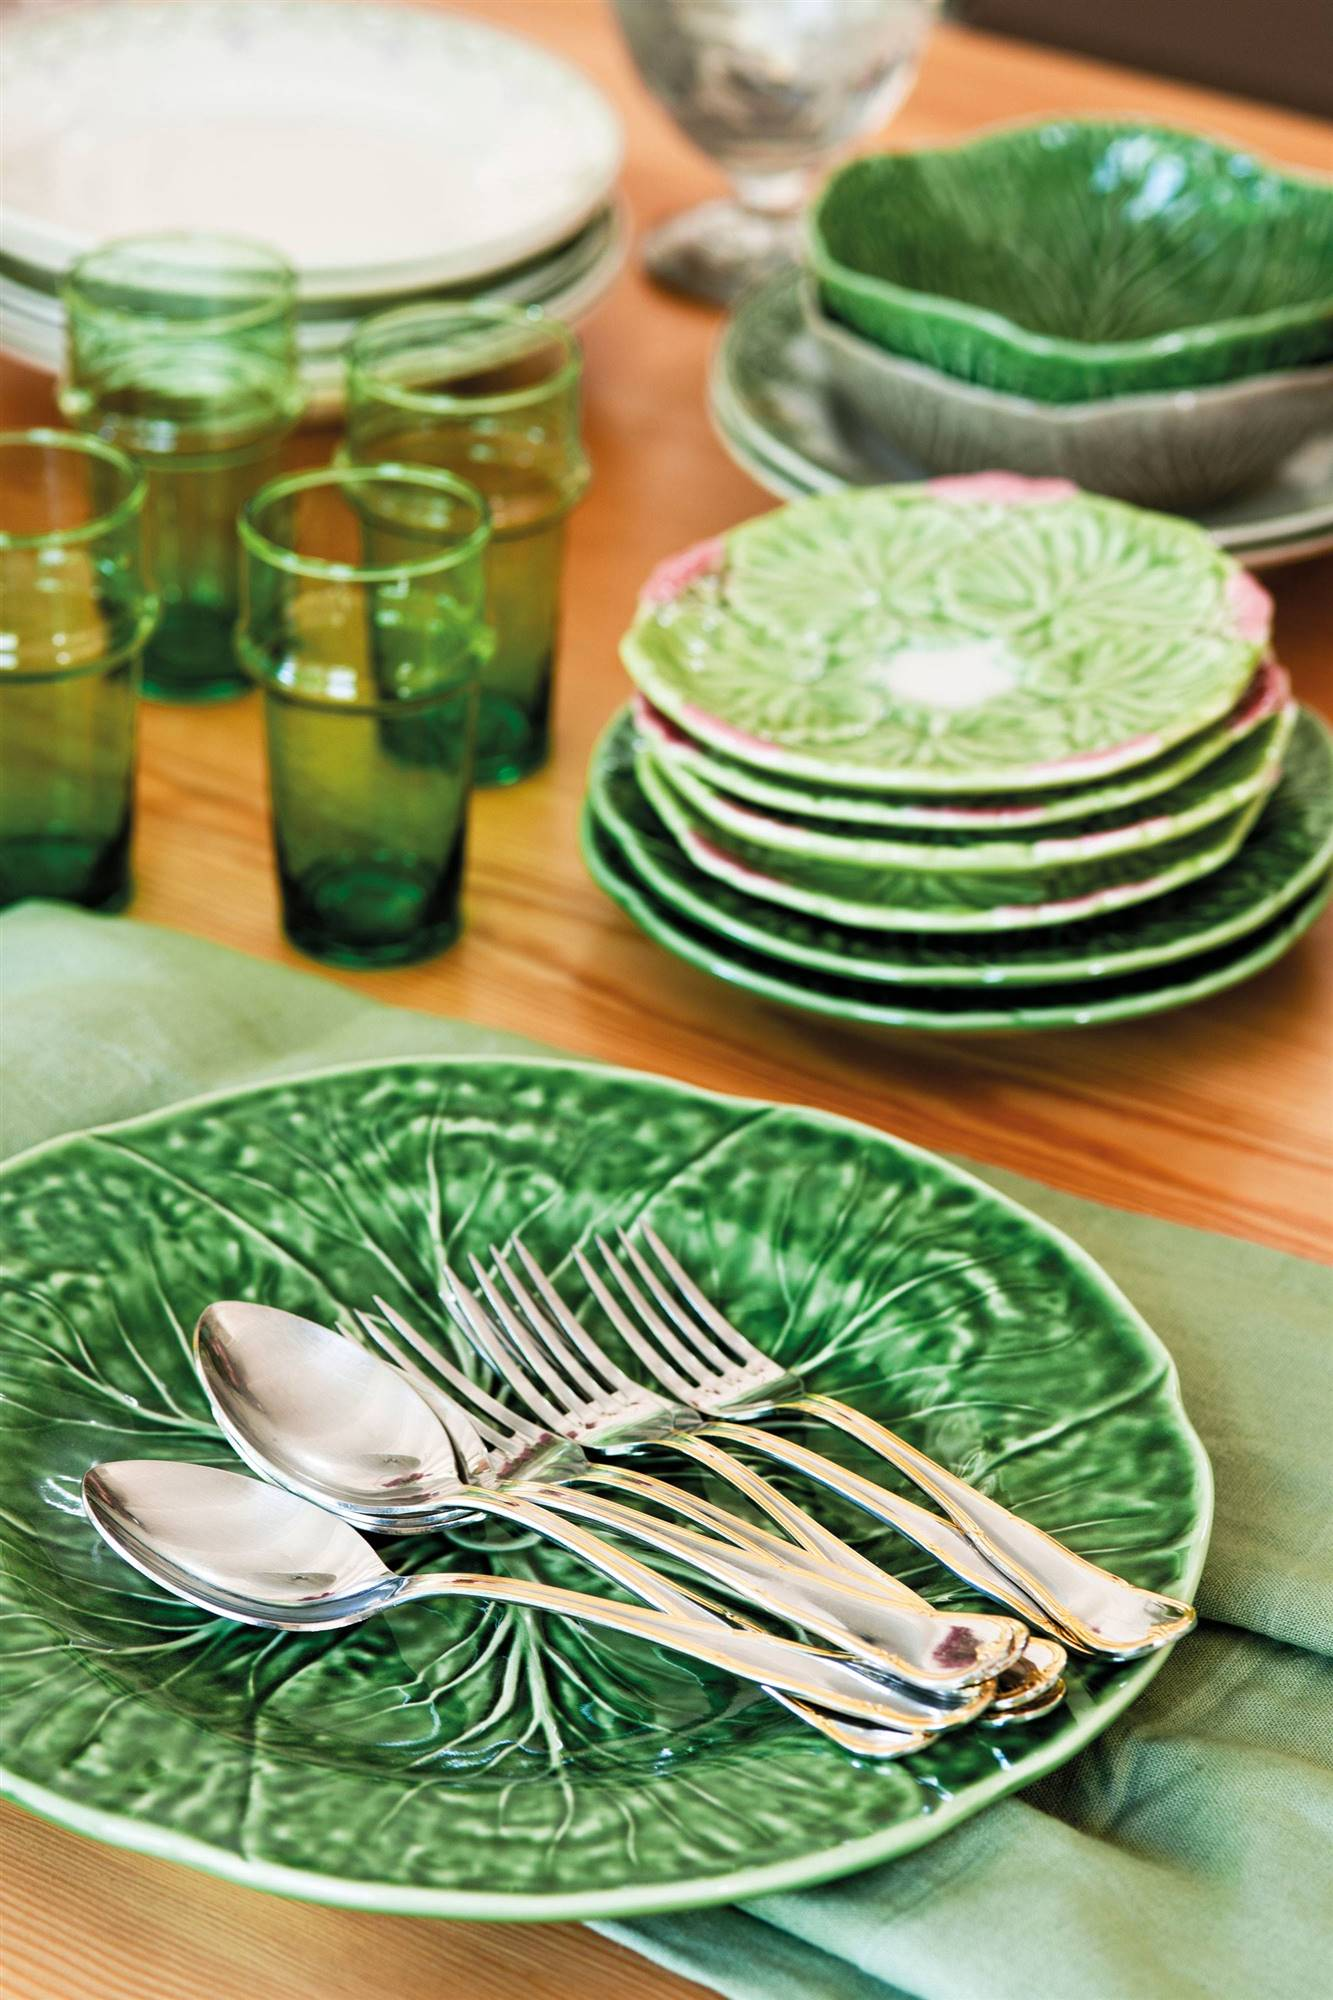 Dishes in green water.  After: the table comes first